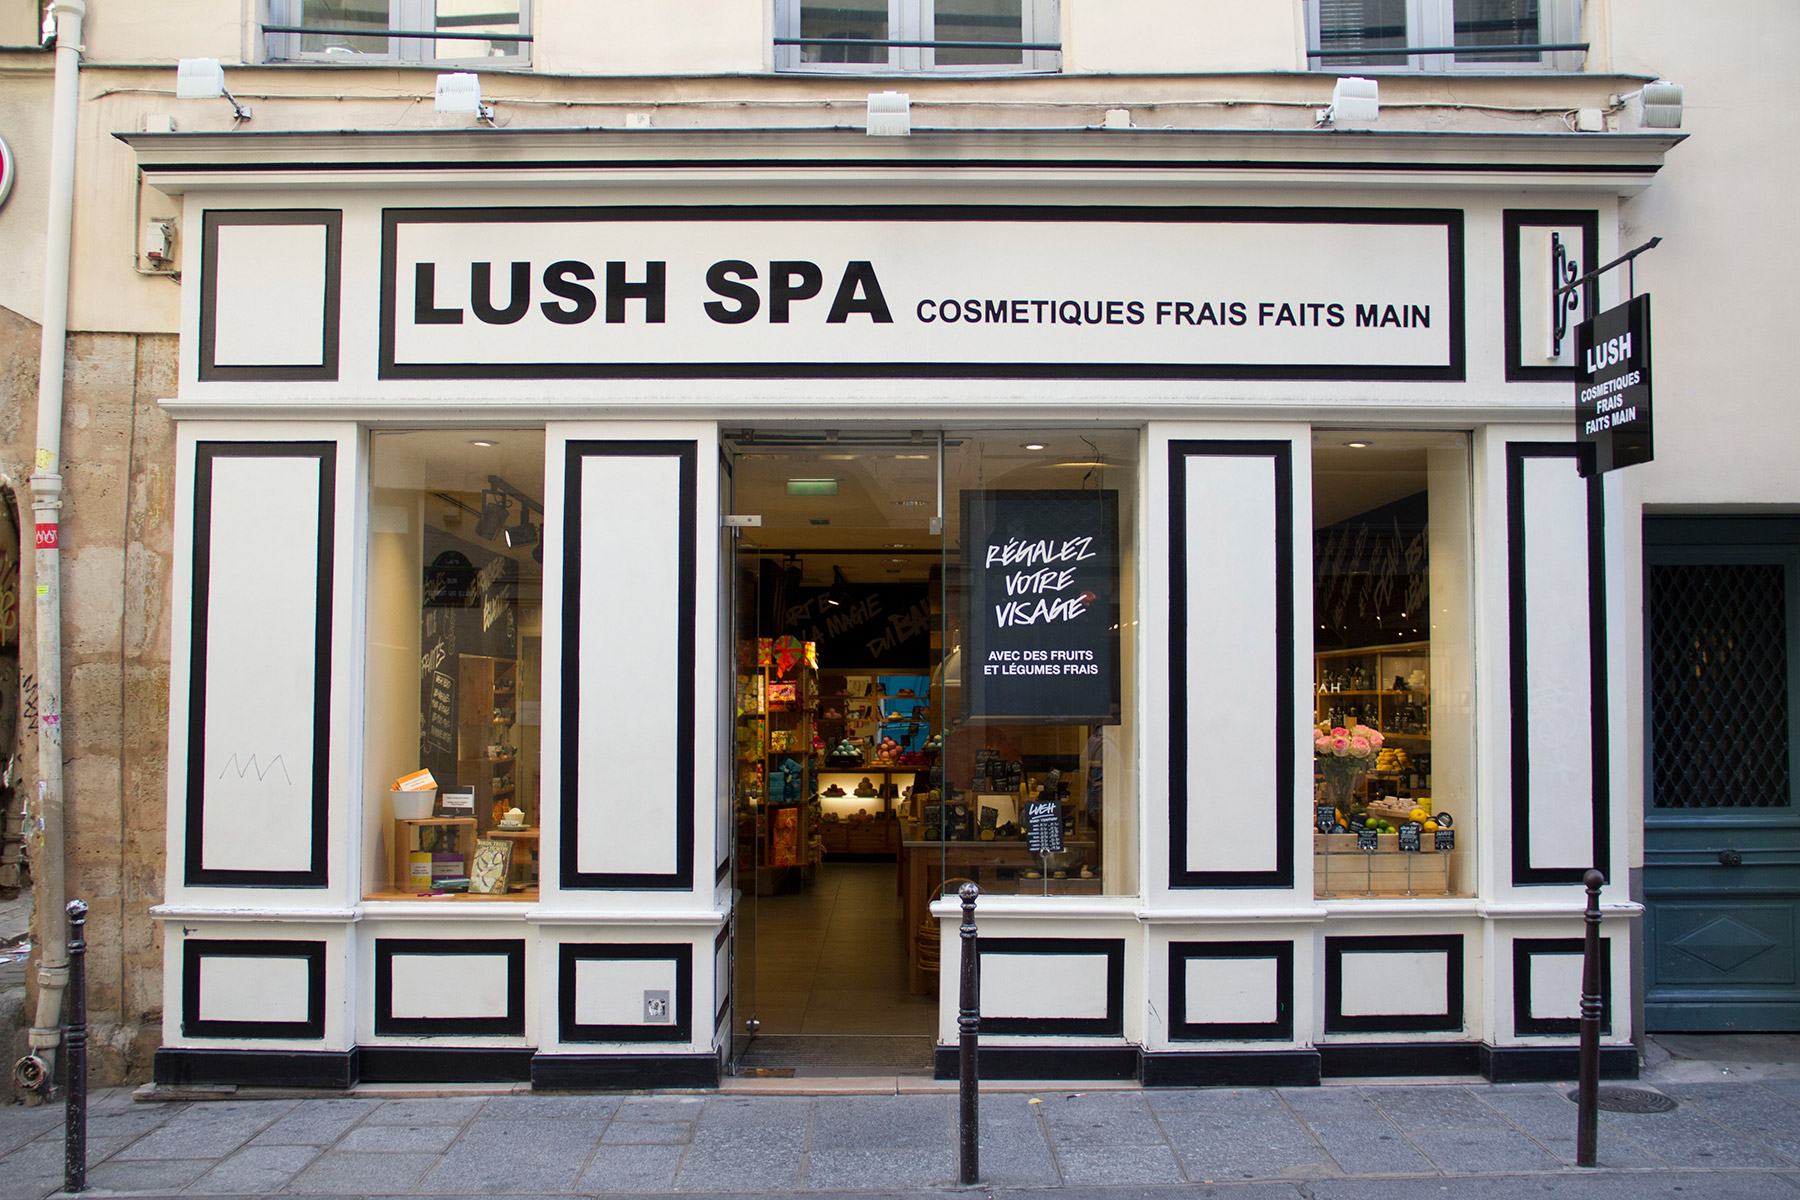 Salon Vintage Paris Lush Spa Lush France